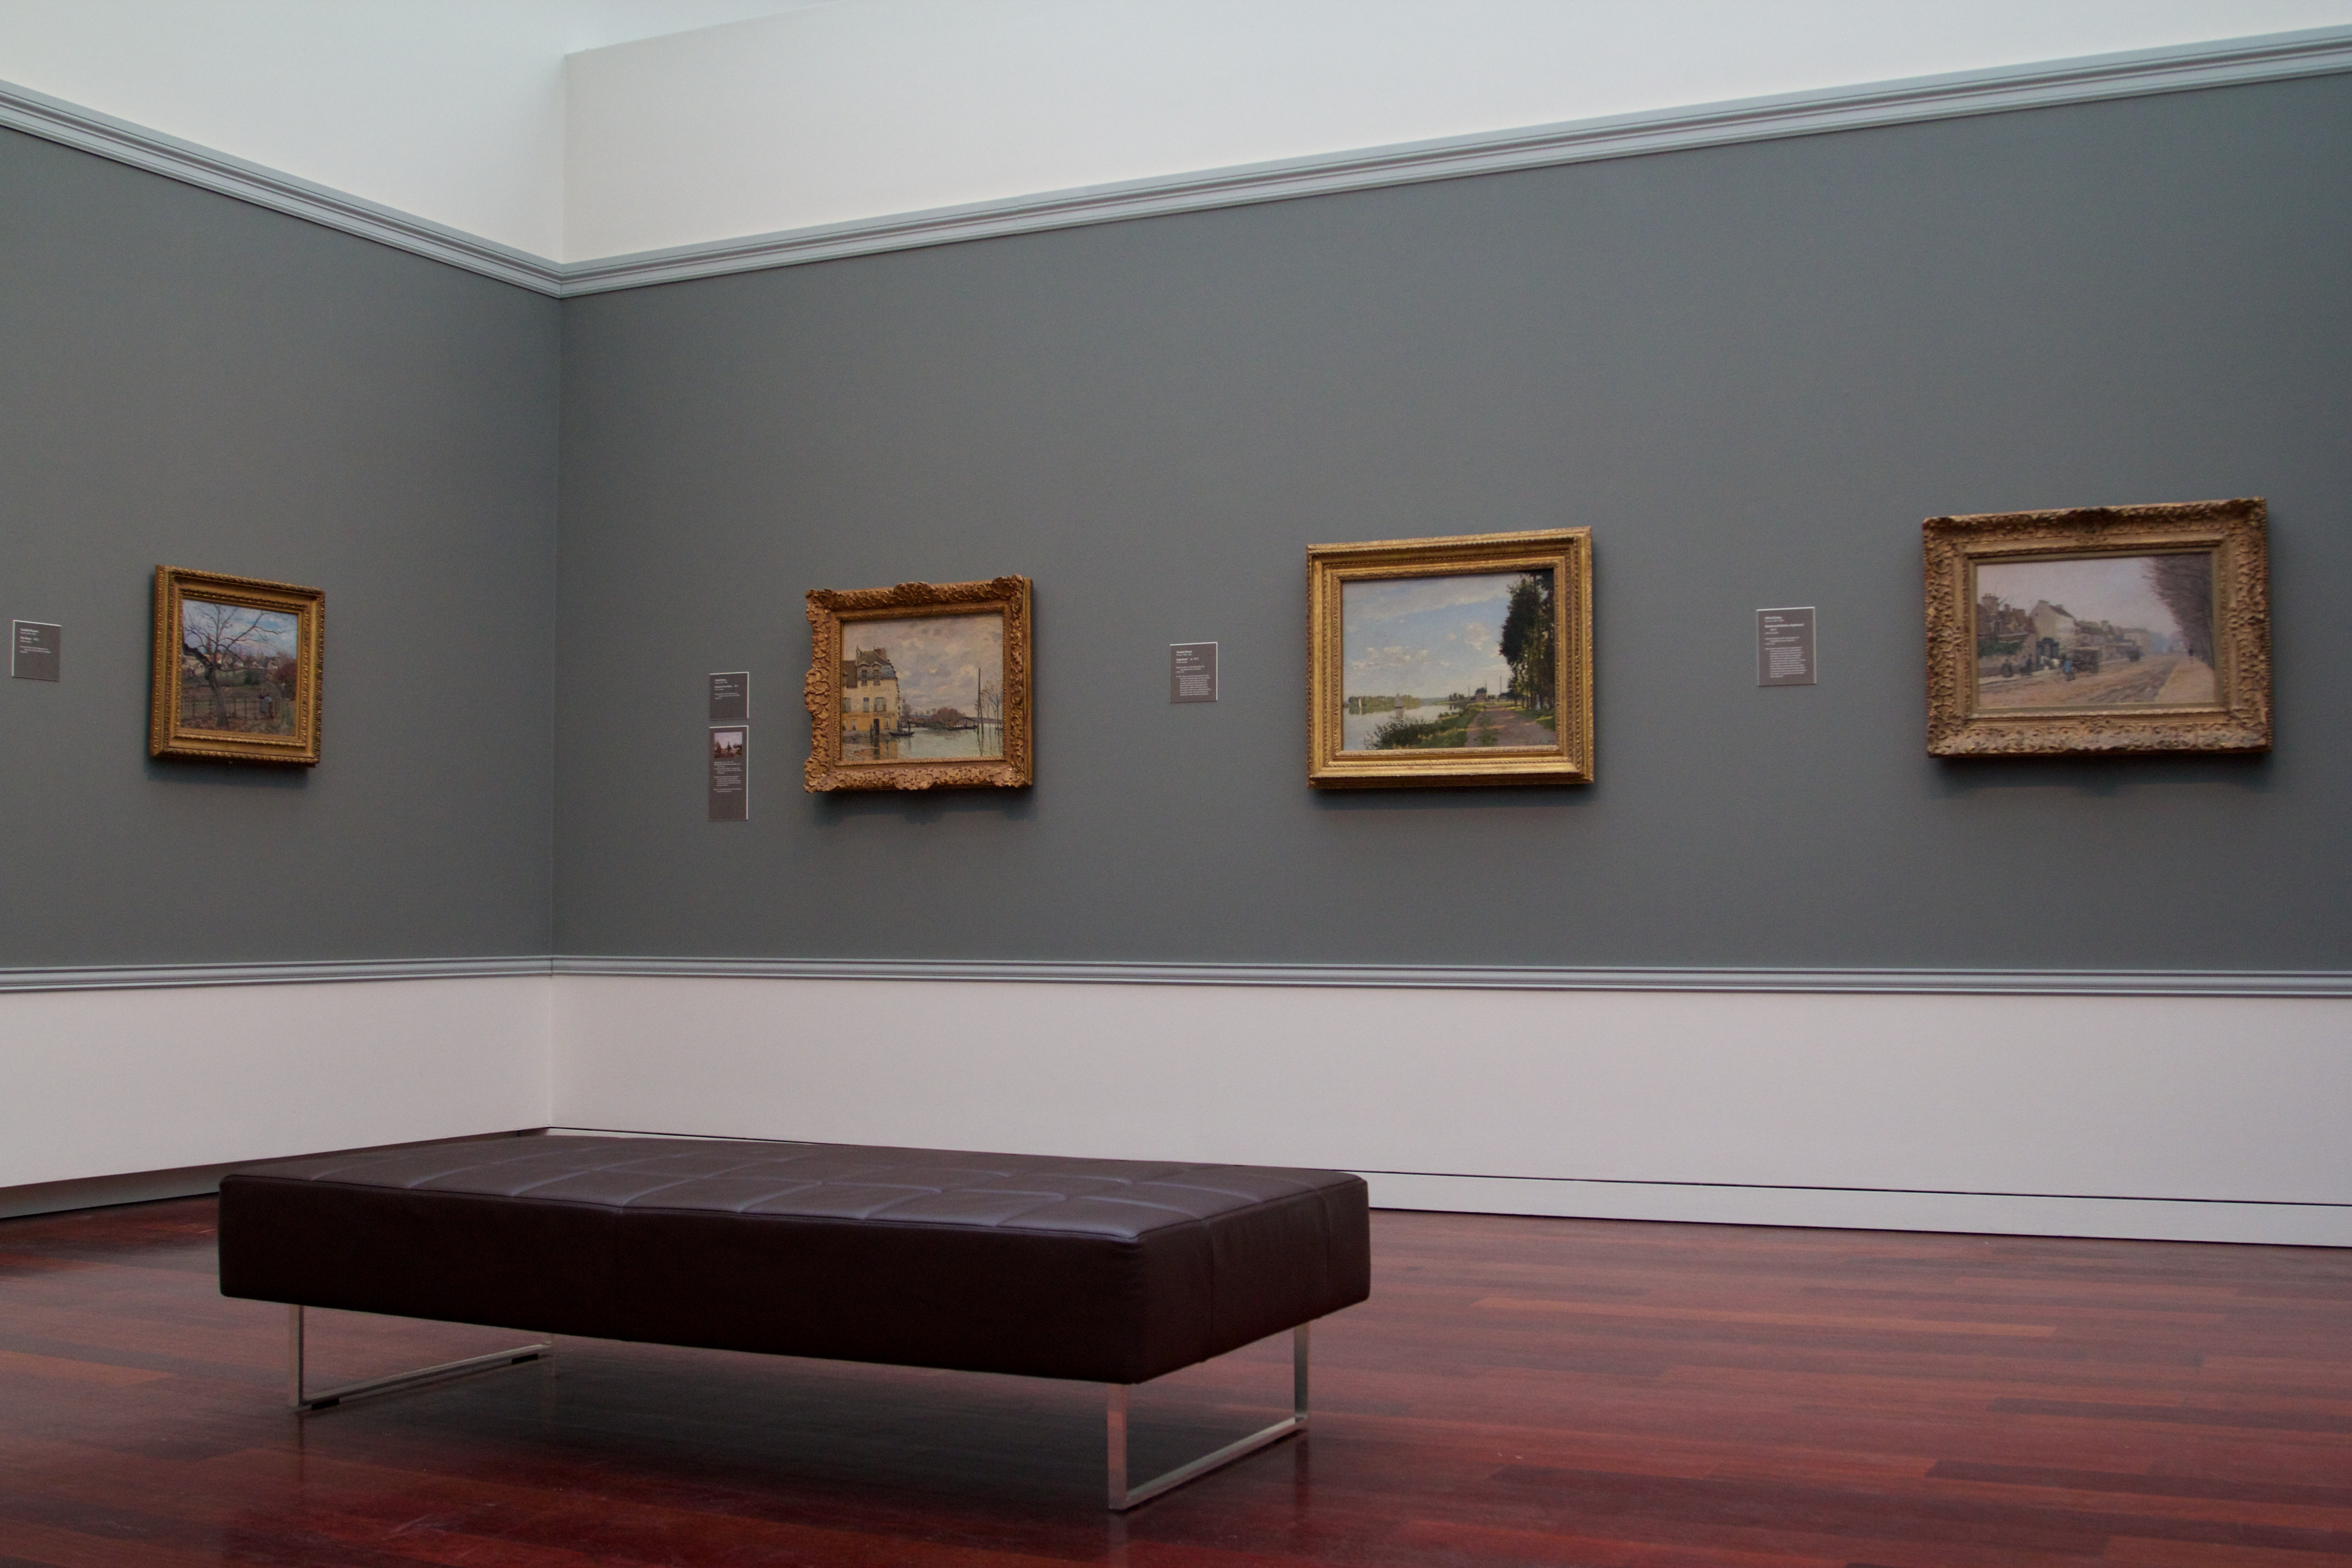 Tour: Intimate Impressionism from the National Gallery of Art